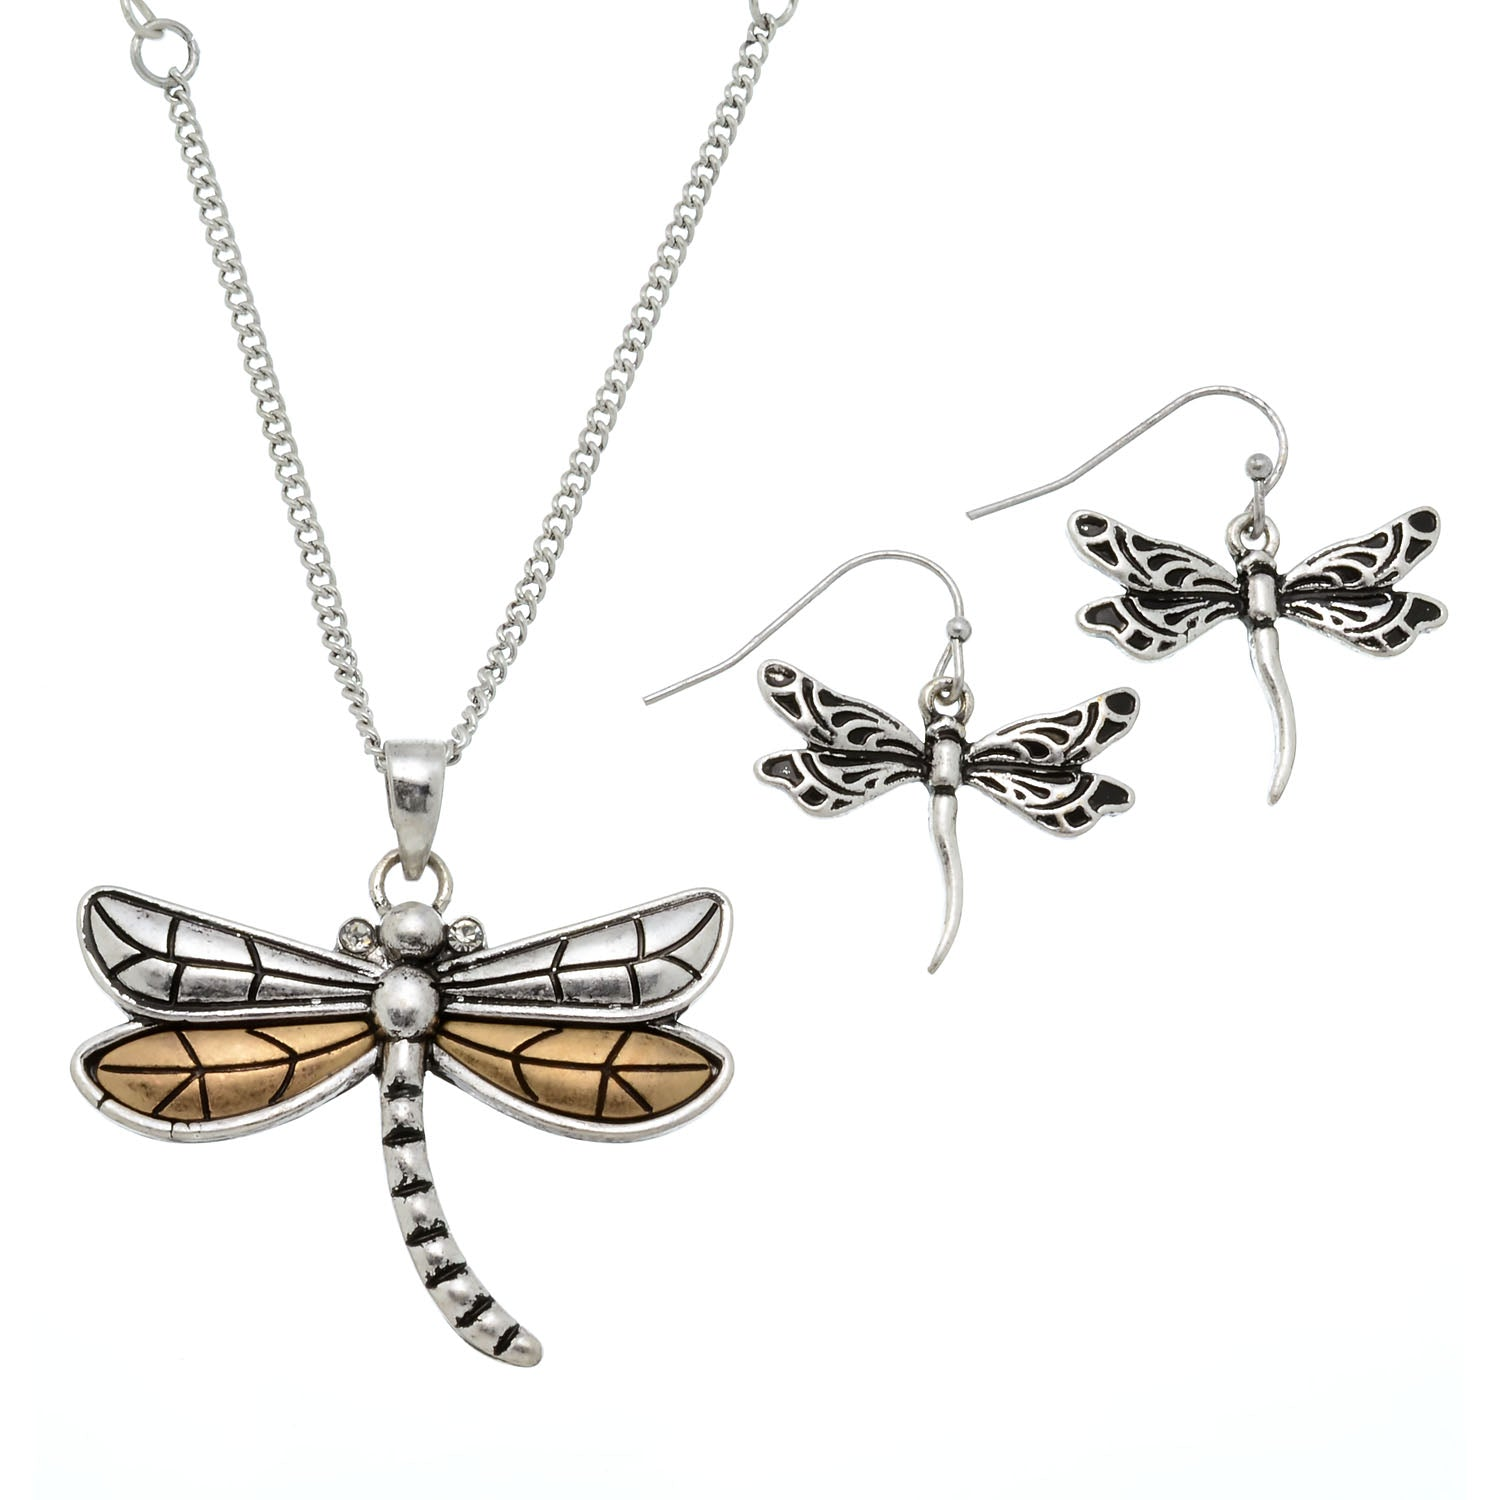 dragonfly res pendant soft peach rickis silver brushed hi necklace